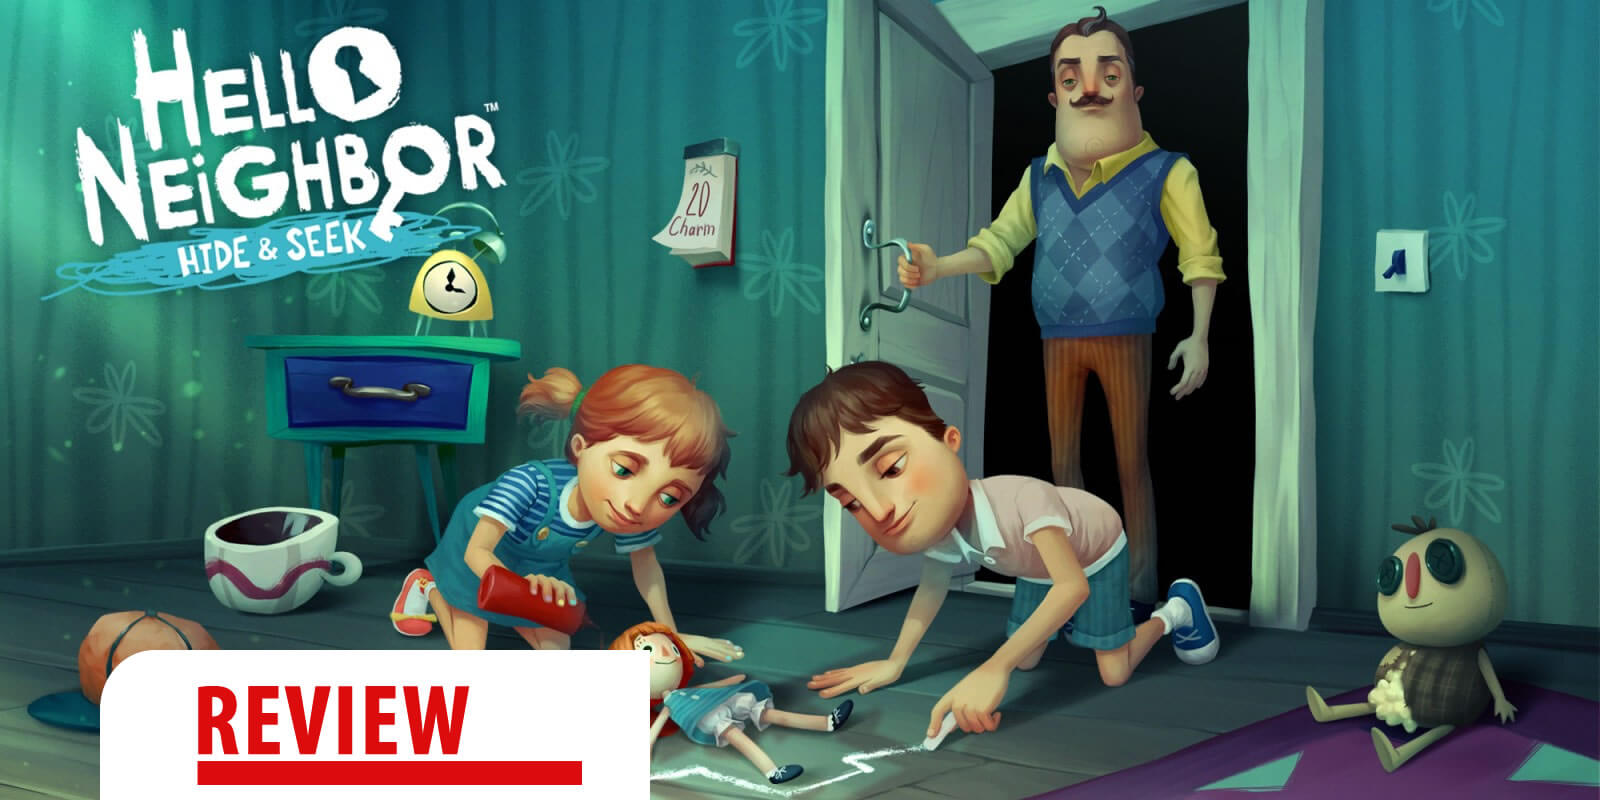 Review: Hello Neighbor Hide and Seek